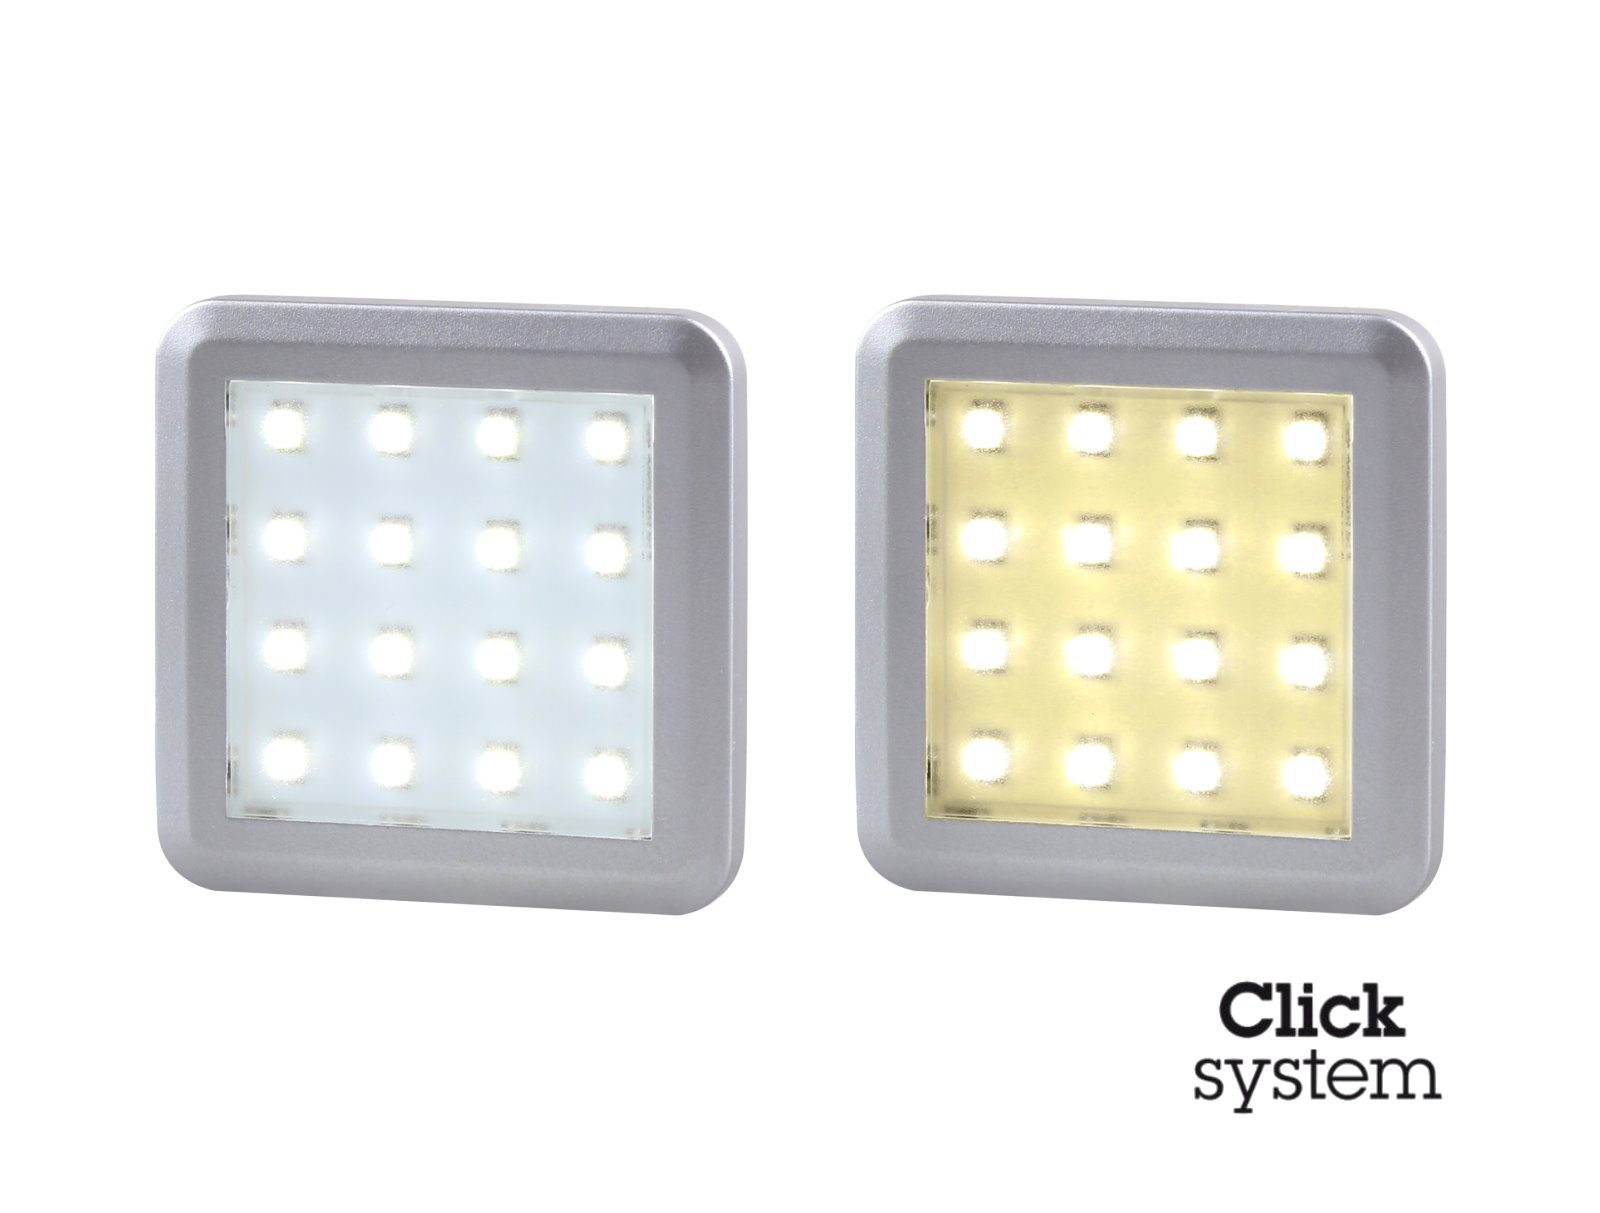 zubeh r 12v led clicksystem. Black Bedroom Furniture Sets. Home Design Ideas